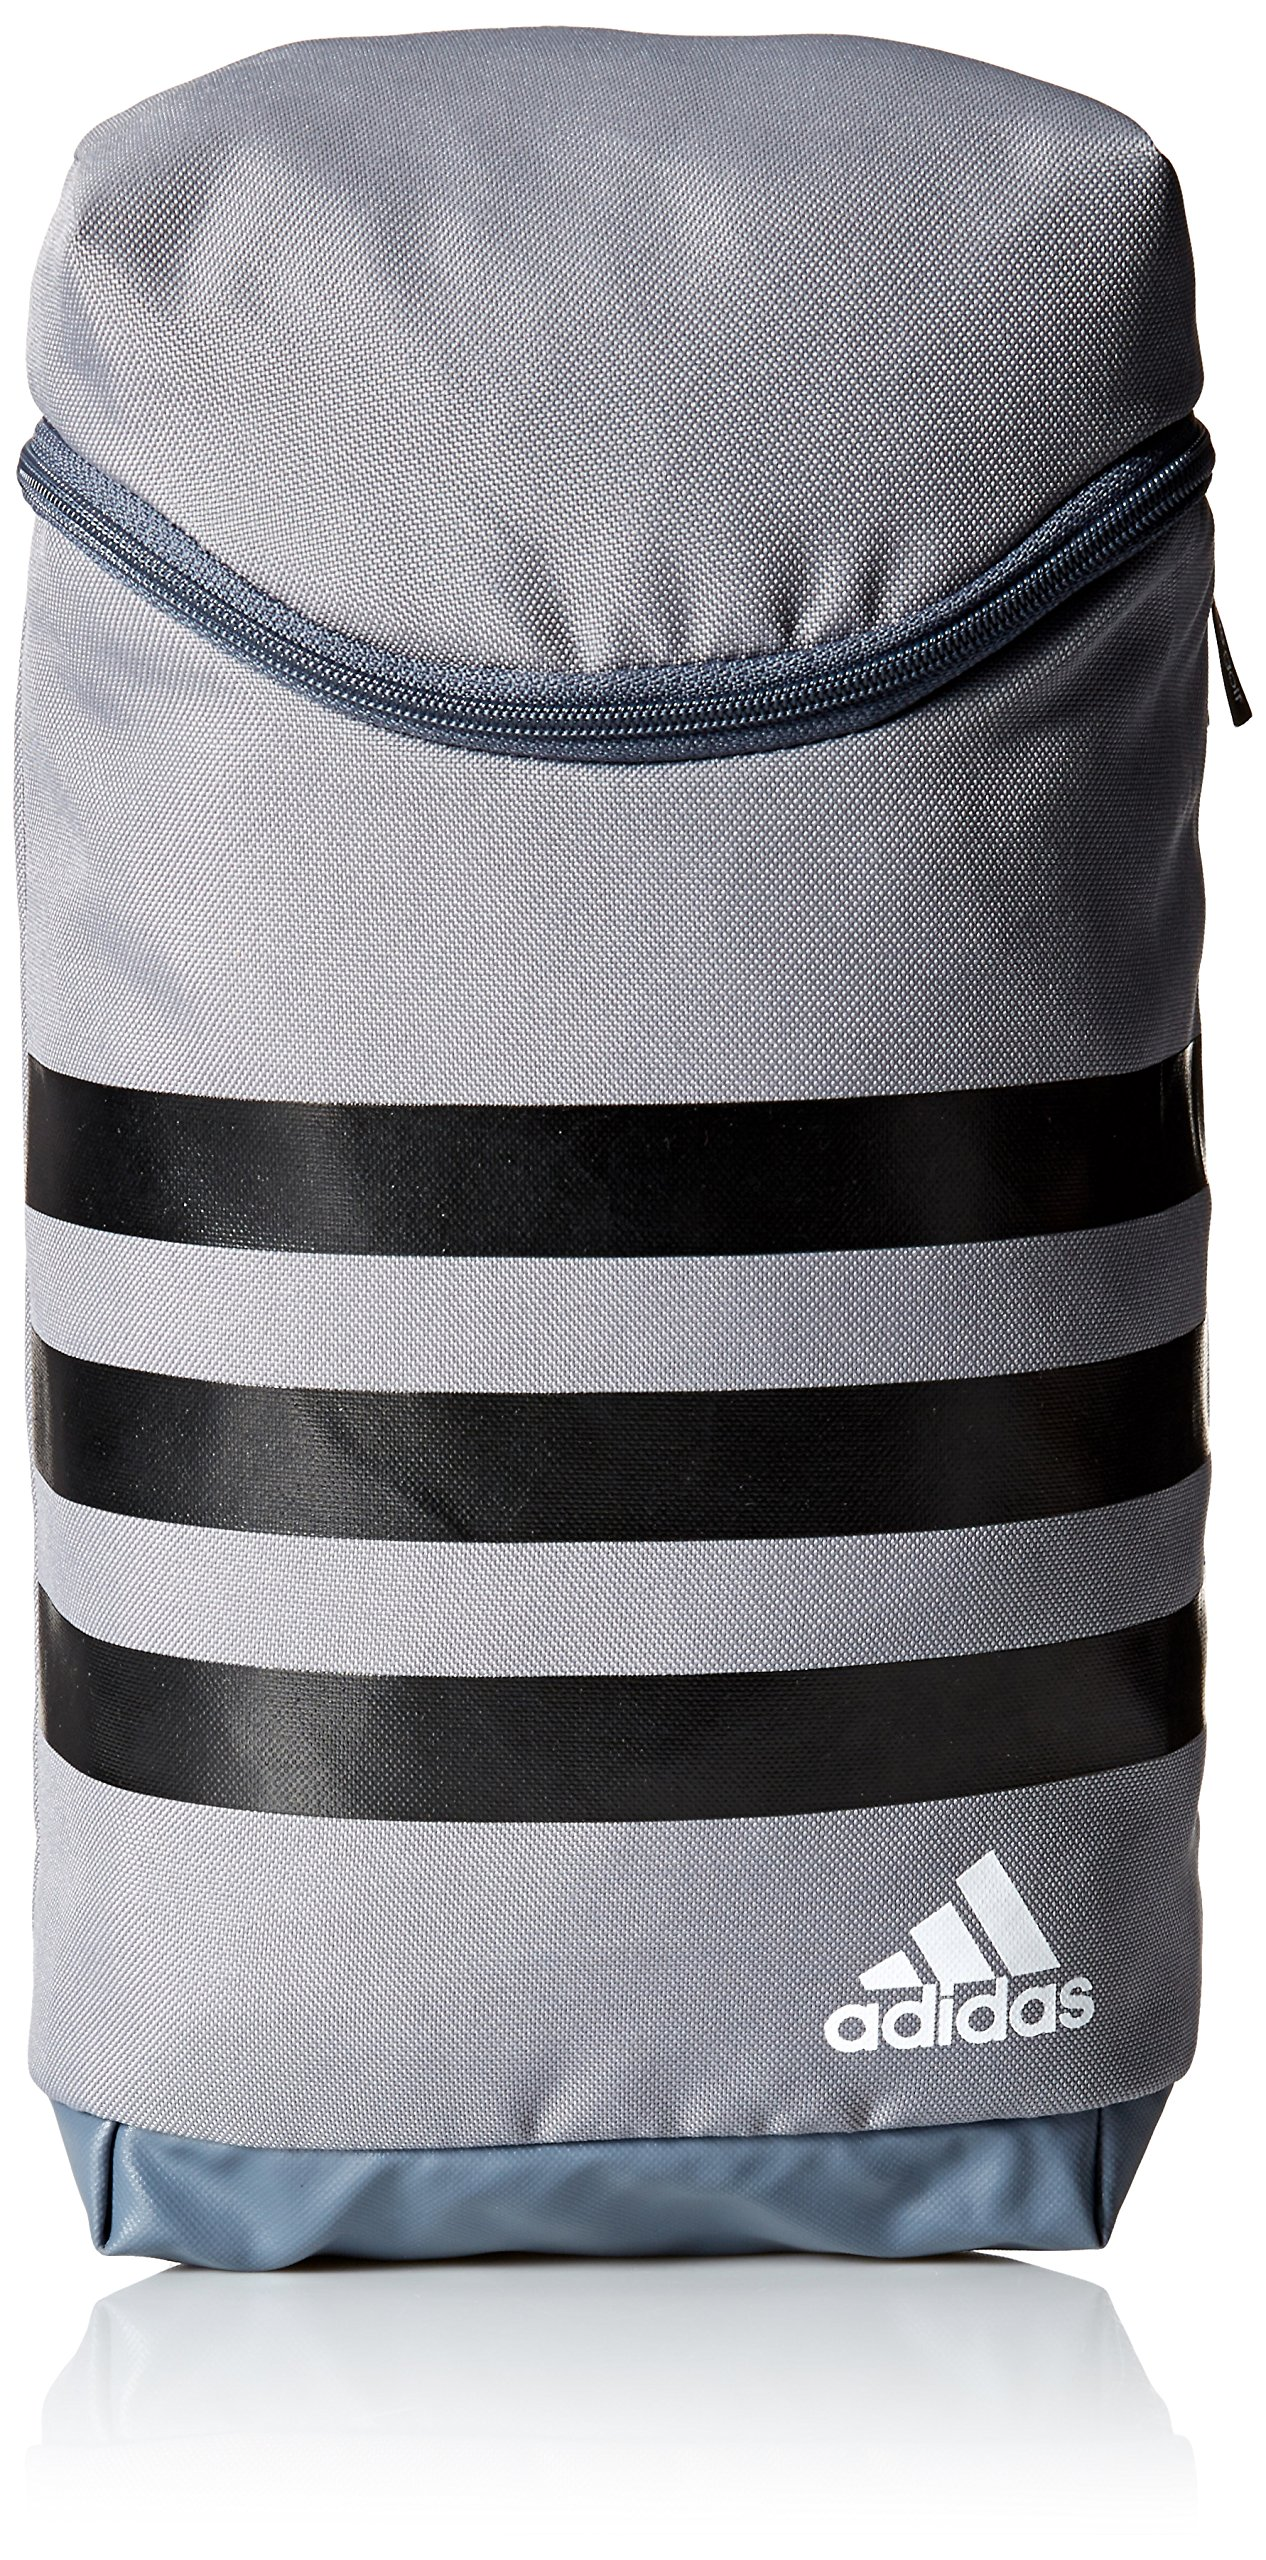 adidas Golf 3-Stripes Golf Shoe Bag, Grey/Black/White, One Size by adidas